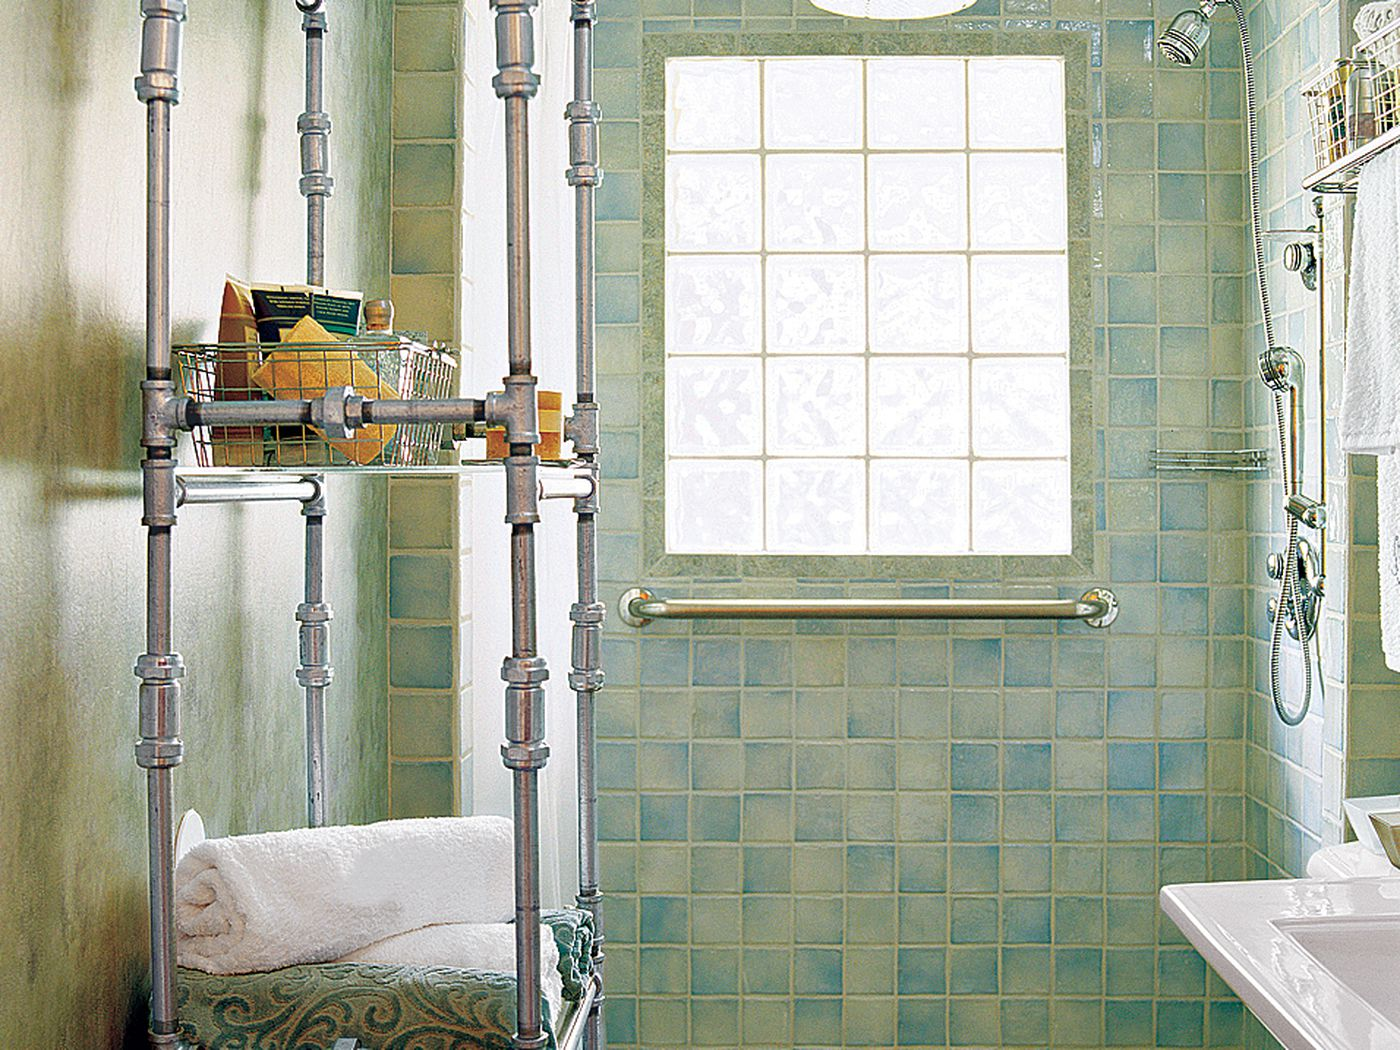 15 Small Bathroom Ideas This Old House